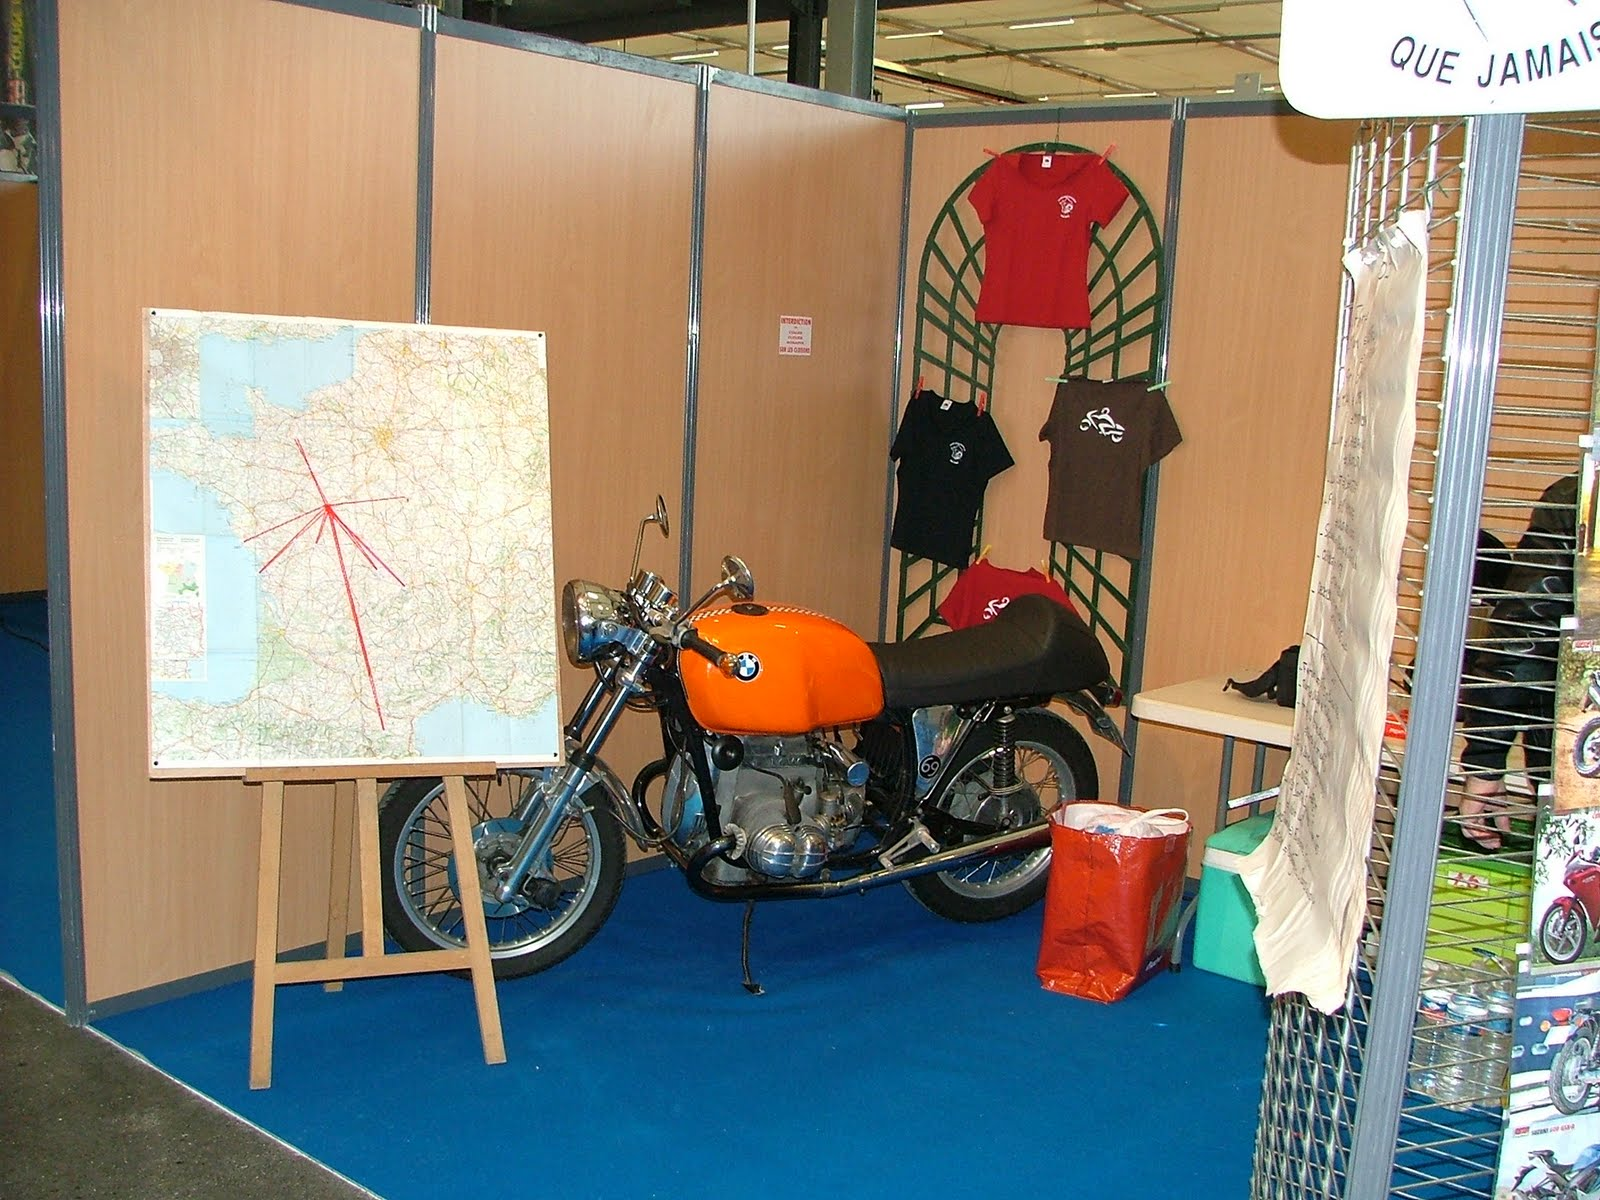 Moto club 37 vmqj salon de la moto 2011 rochepinard tours for Salon rochepinard tours